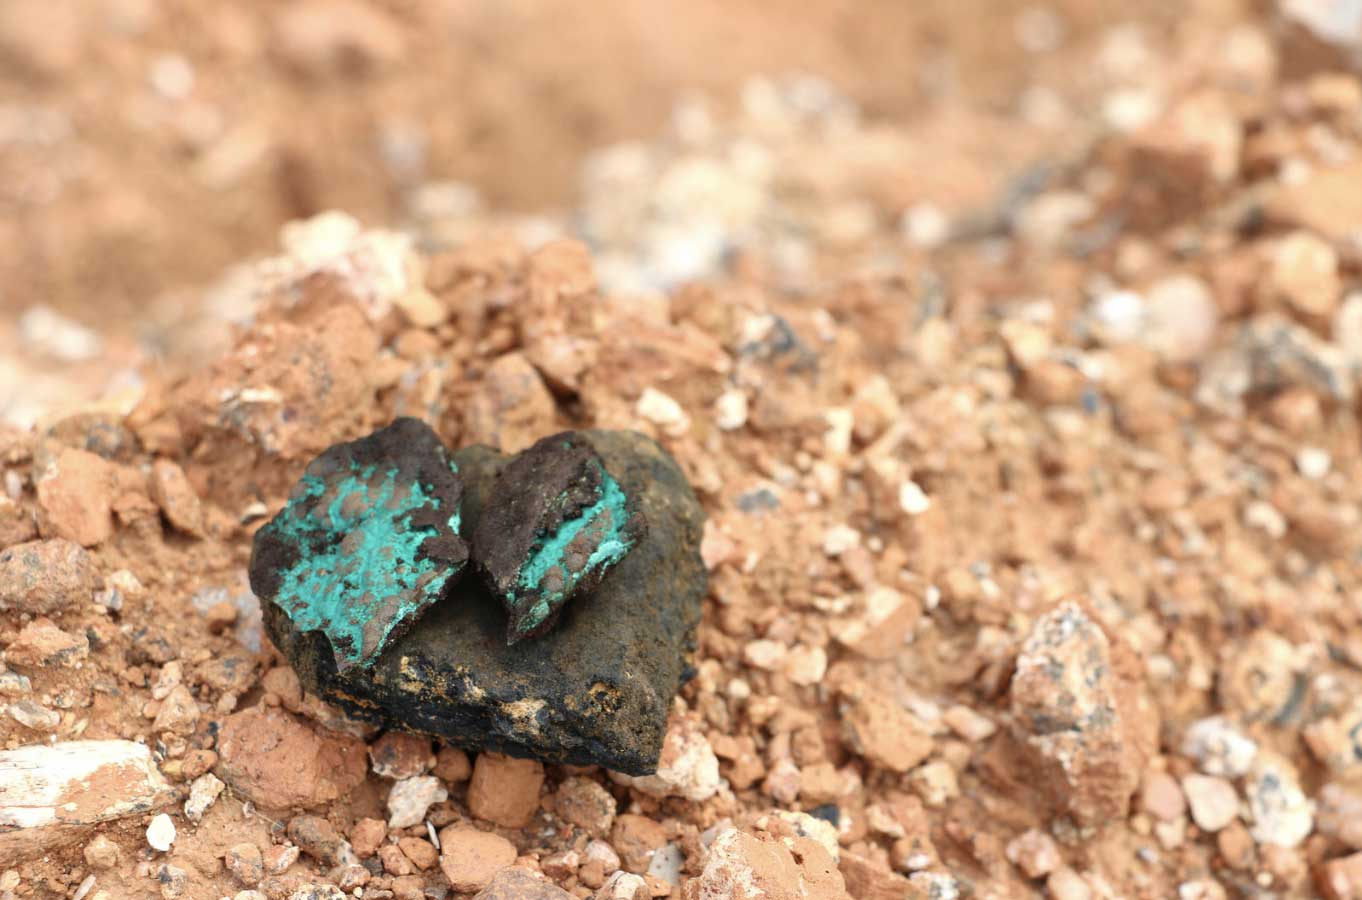 Cobalt is often found alongside copper and malachite (stones with blue-green). Therefore, these supply chains, and the related risks, are often closely linked to each other.